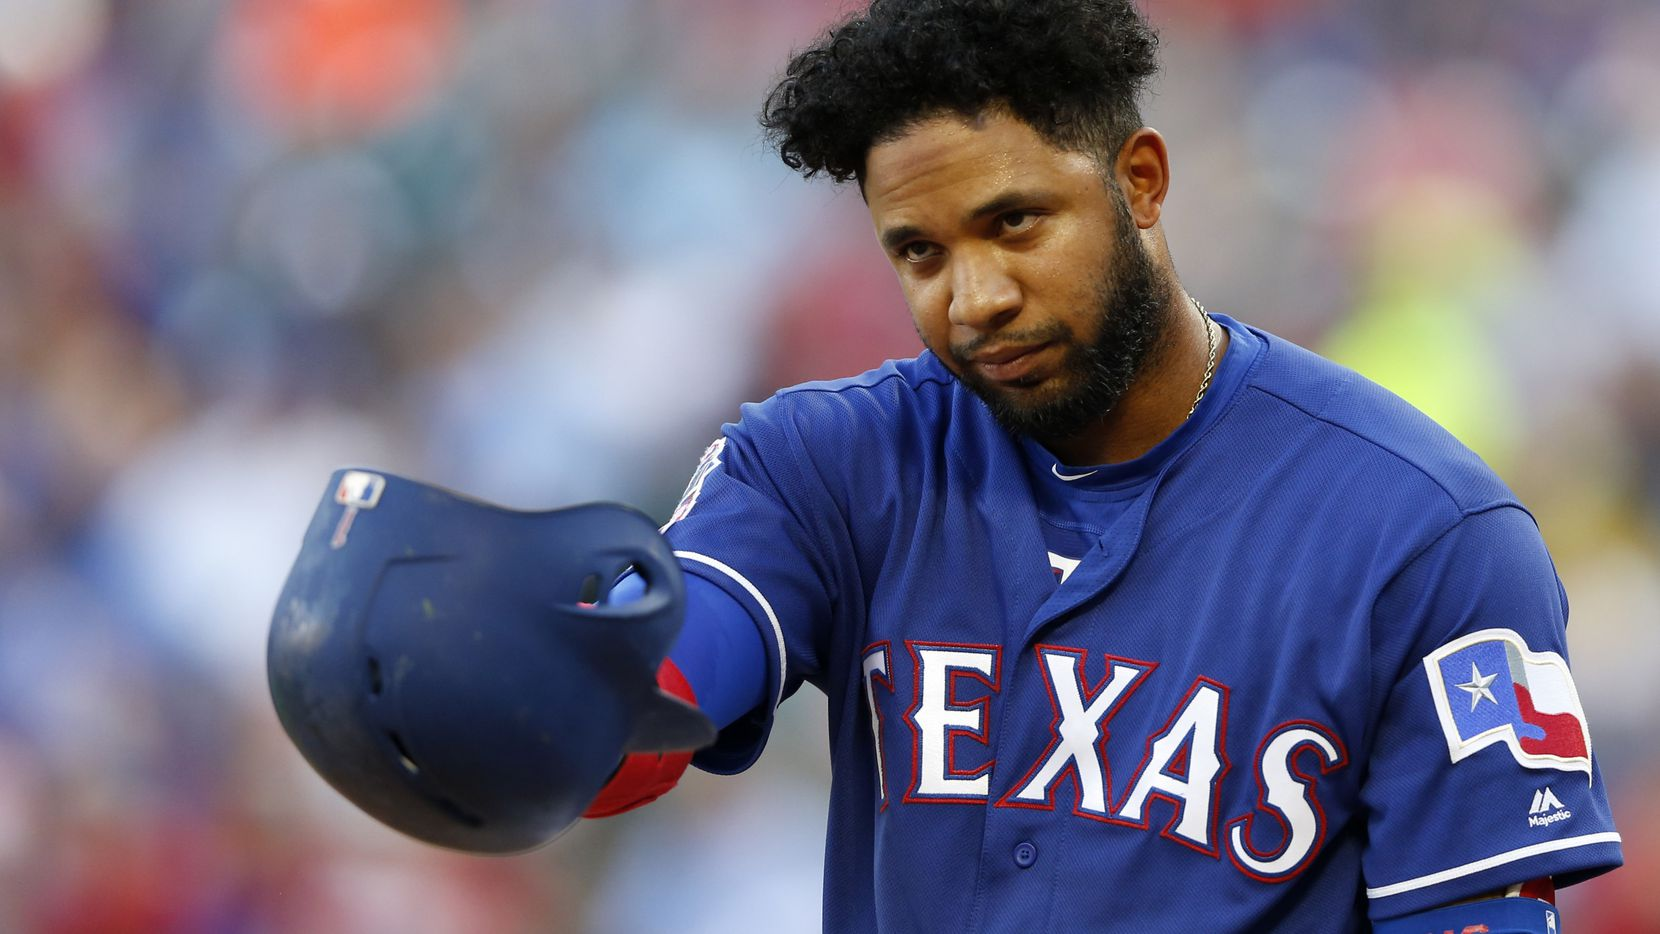 Texas Rangers shortstop Elvis Andrus (1) tips his hat to the Los Angeles Angels dugout before batting during the first inning of play at Globe Life Park in Arlington, Texas on Tuesday, July 2, 2019. Los Angeles Angels Tyler Skaggs was found dead in his Southlake hotel room on Monday prior to the scheduled game against the Texas Rangers.